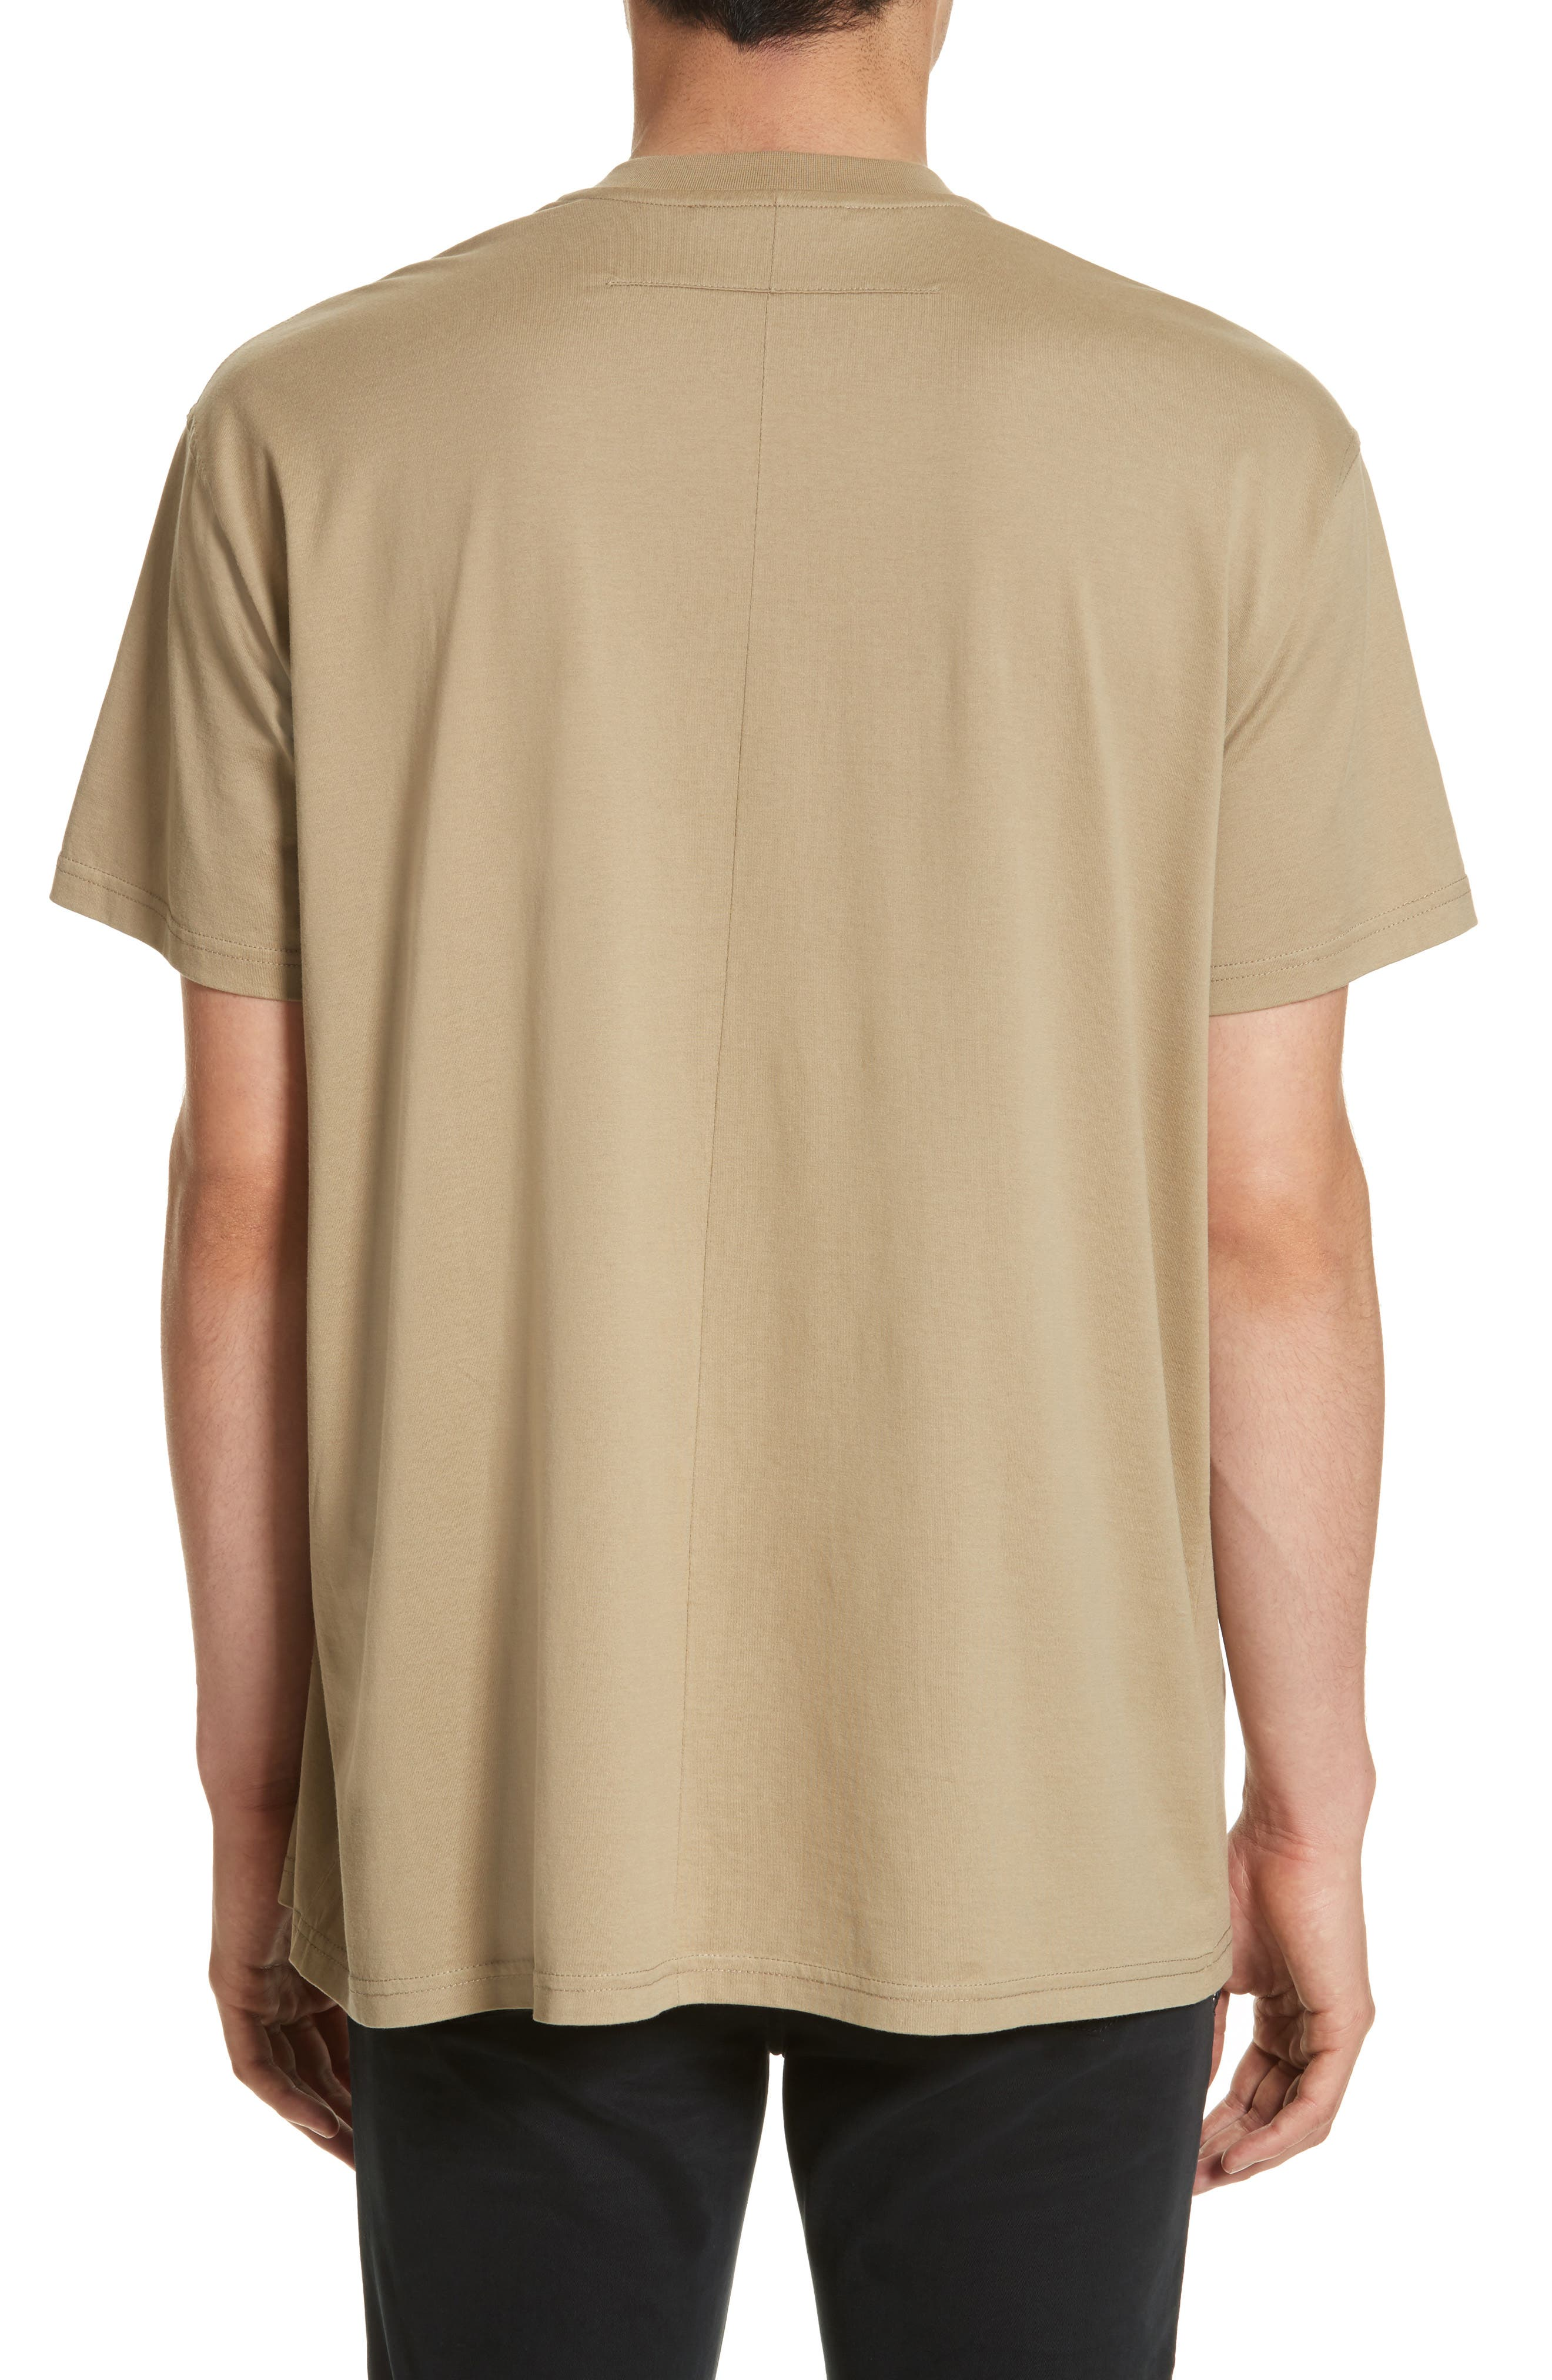 Alternate Image 2  - Givenchy Extra Trim Fit Realize Graphic T-Shirt